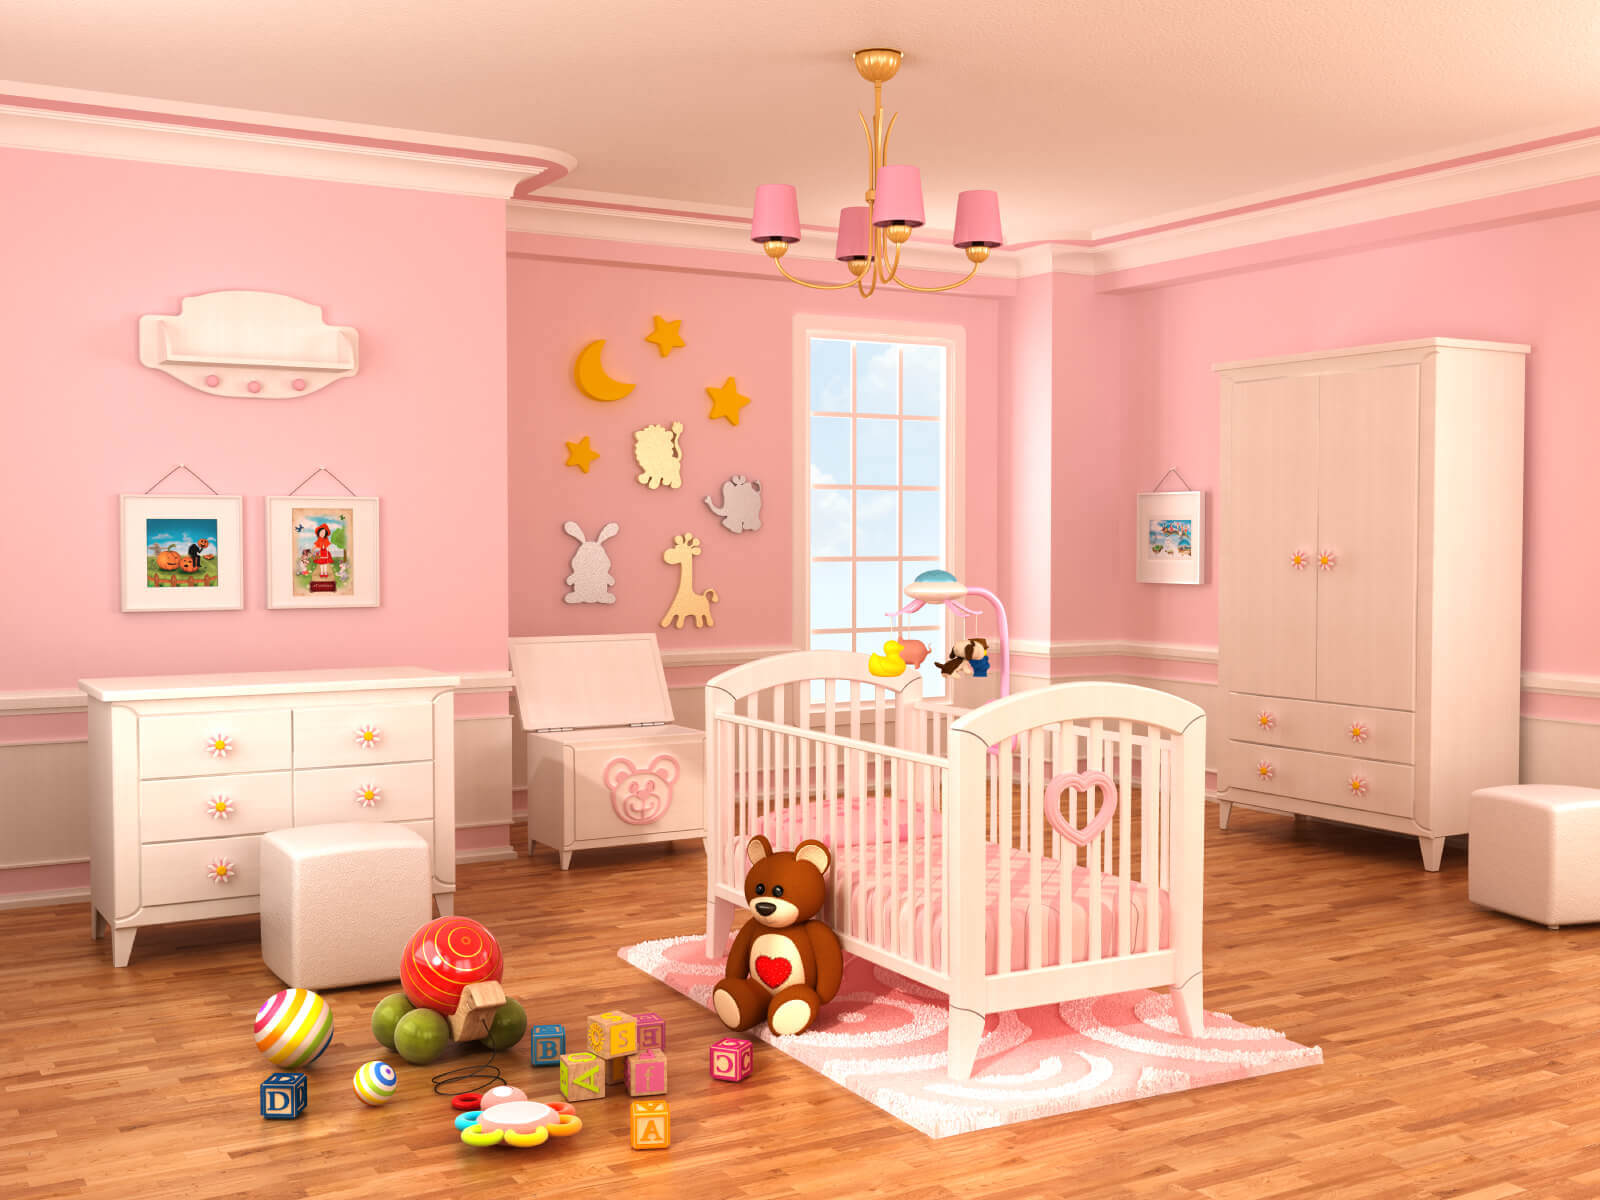 7 Inspiring Kid Room Color Options For Your Little Ones: 18 Baby Girl Nursery Ideas, Themes & Designs (Pictures